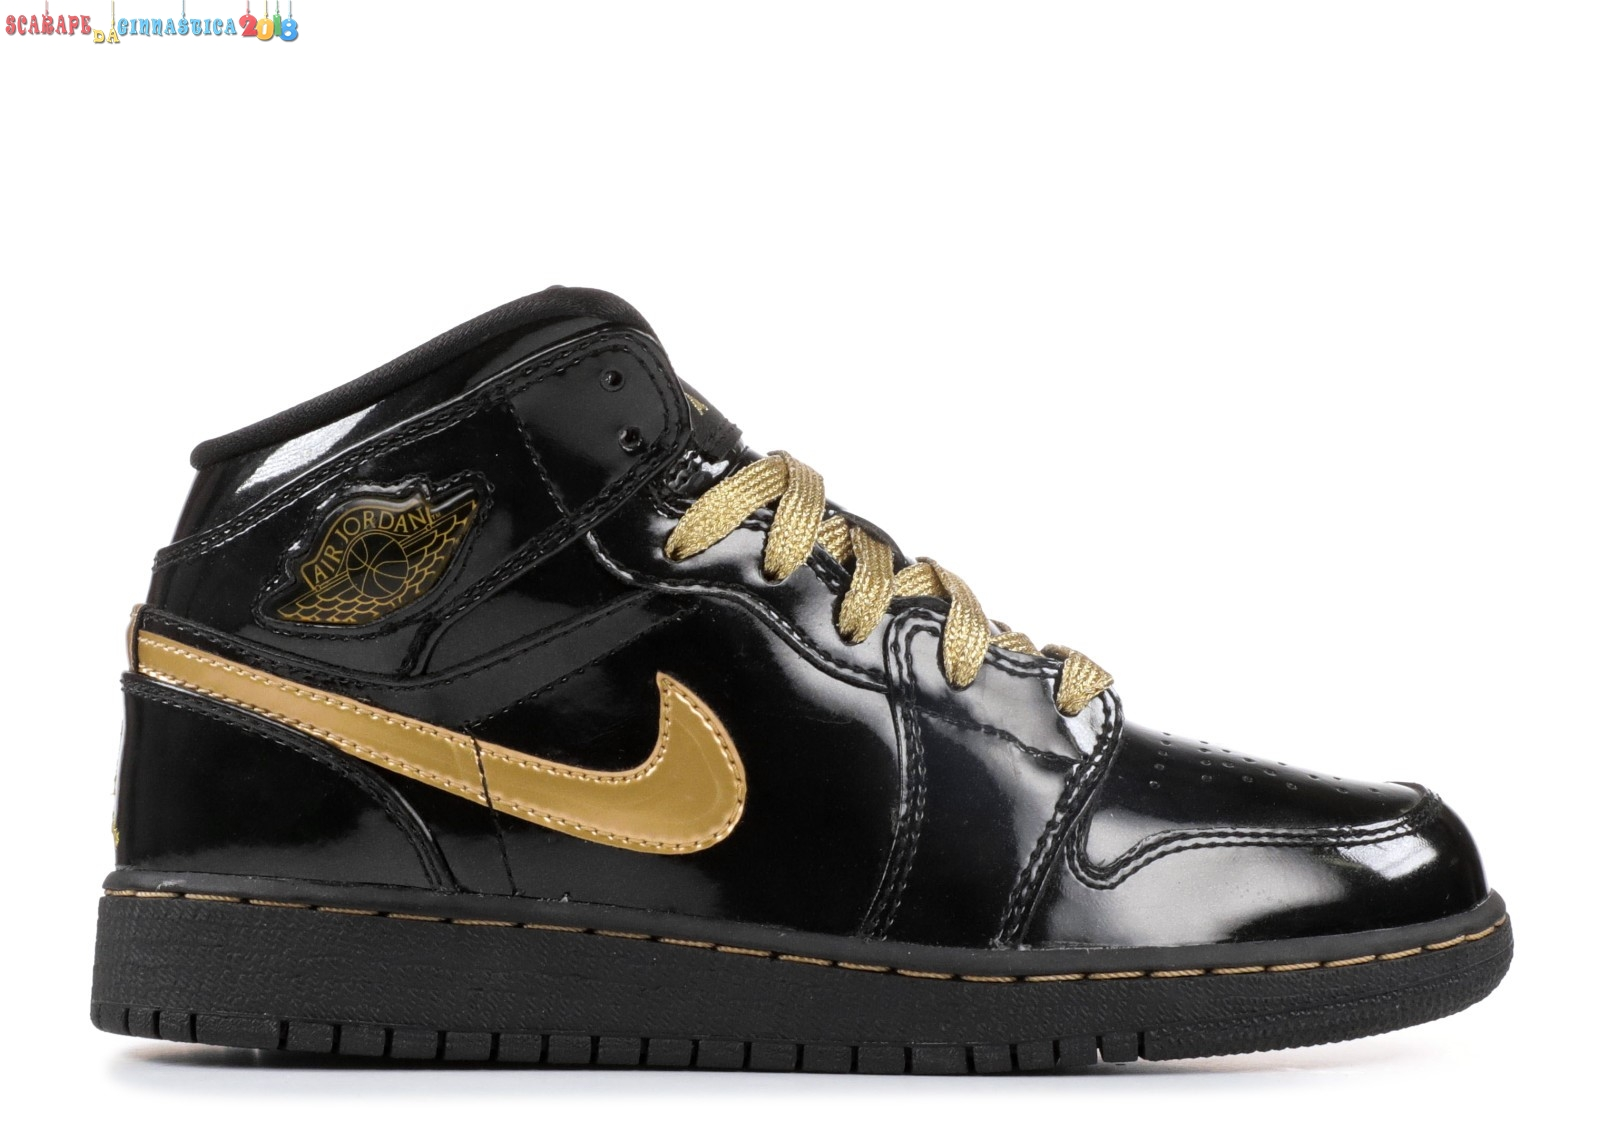 Buy Air Jordan 1 Phat (Gs) Nero Metallico Oro (364781-001) Scarpe sportive